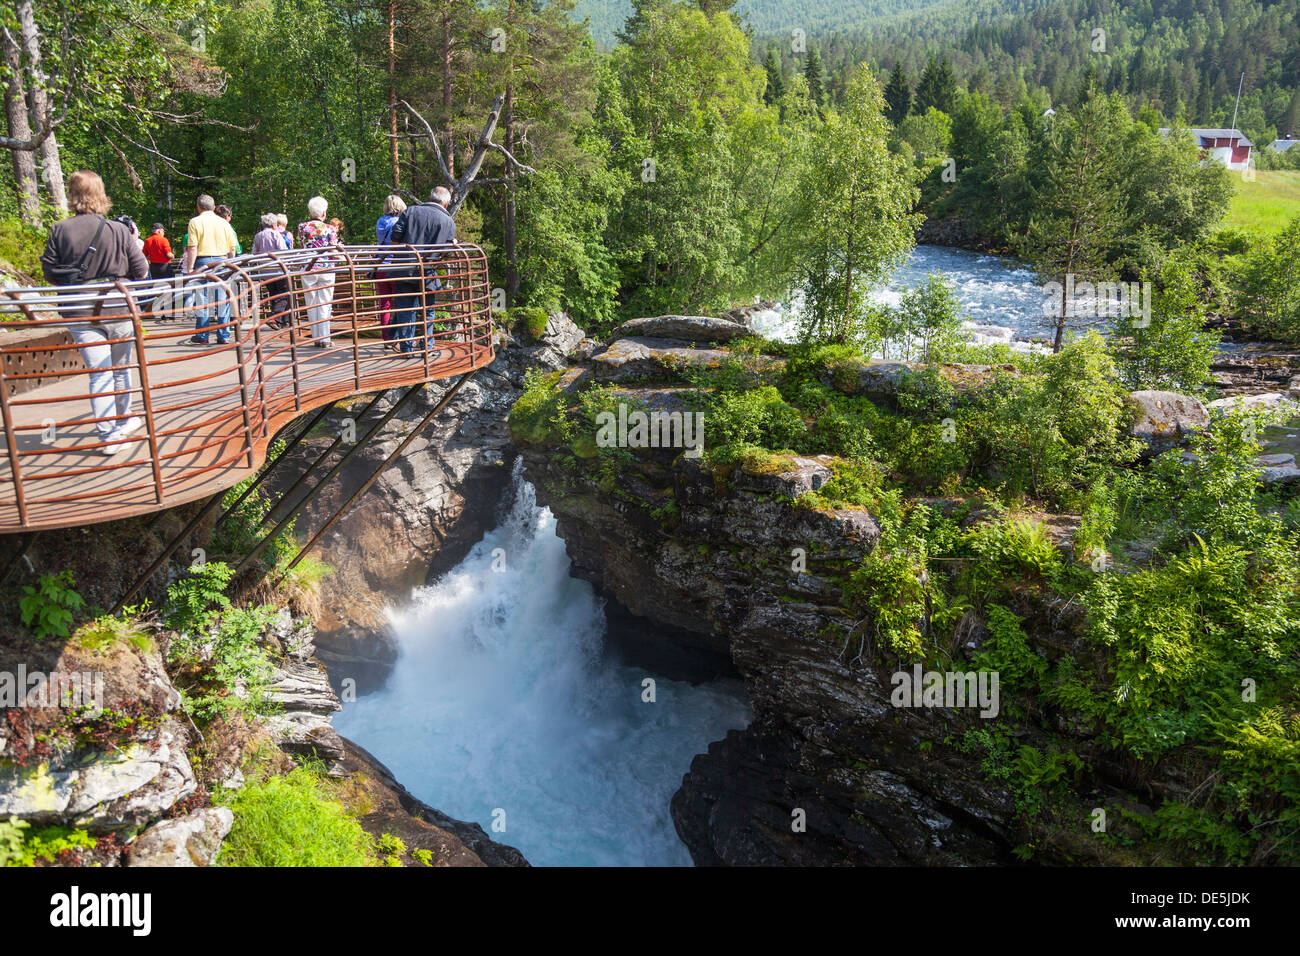 Gudbrandsjuvet gorge, part of National Tourist Route Geiranger - Stock Image